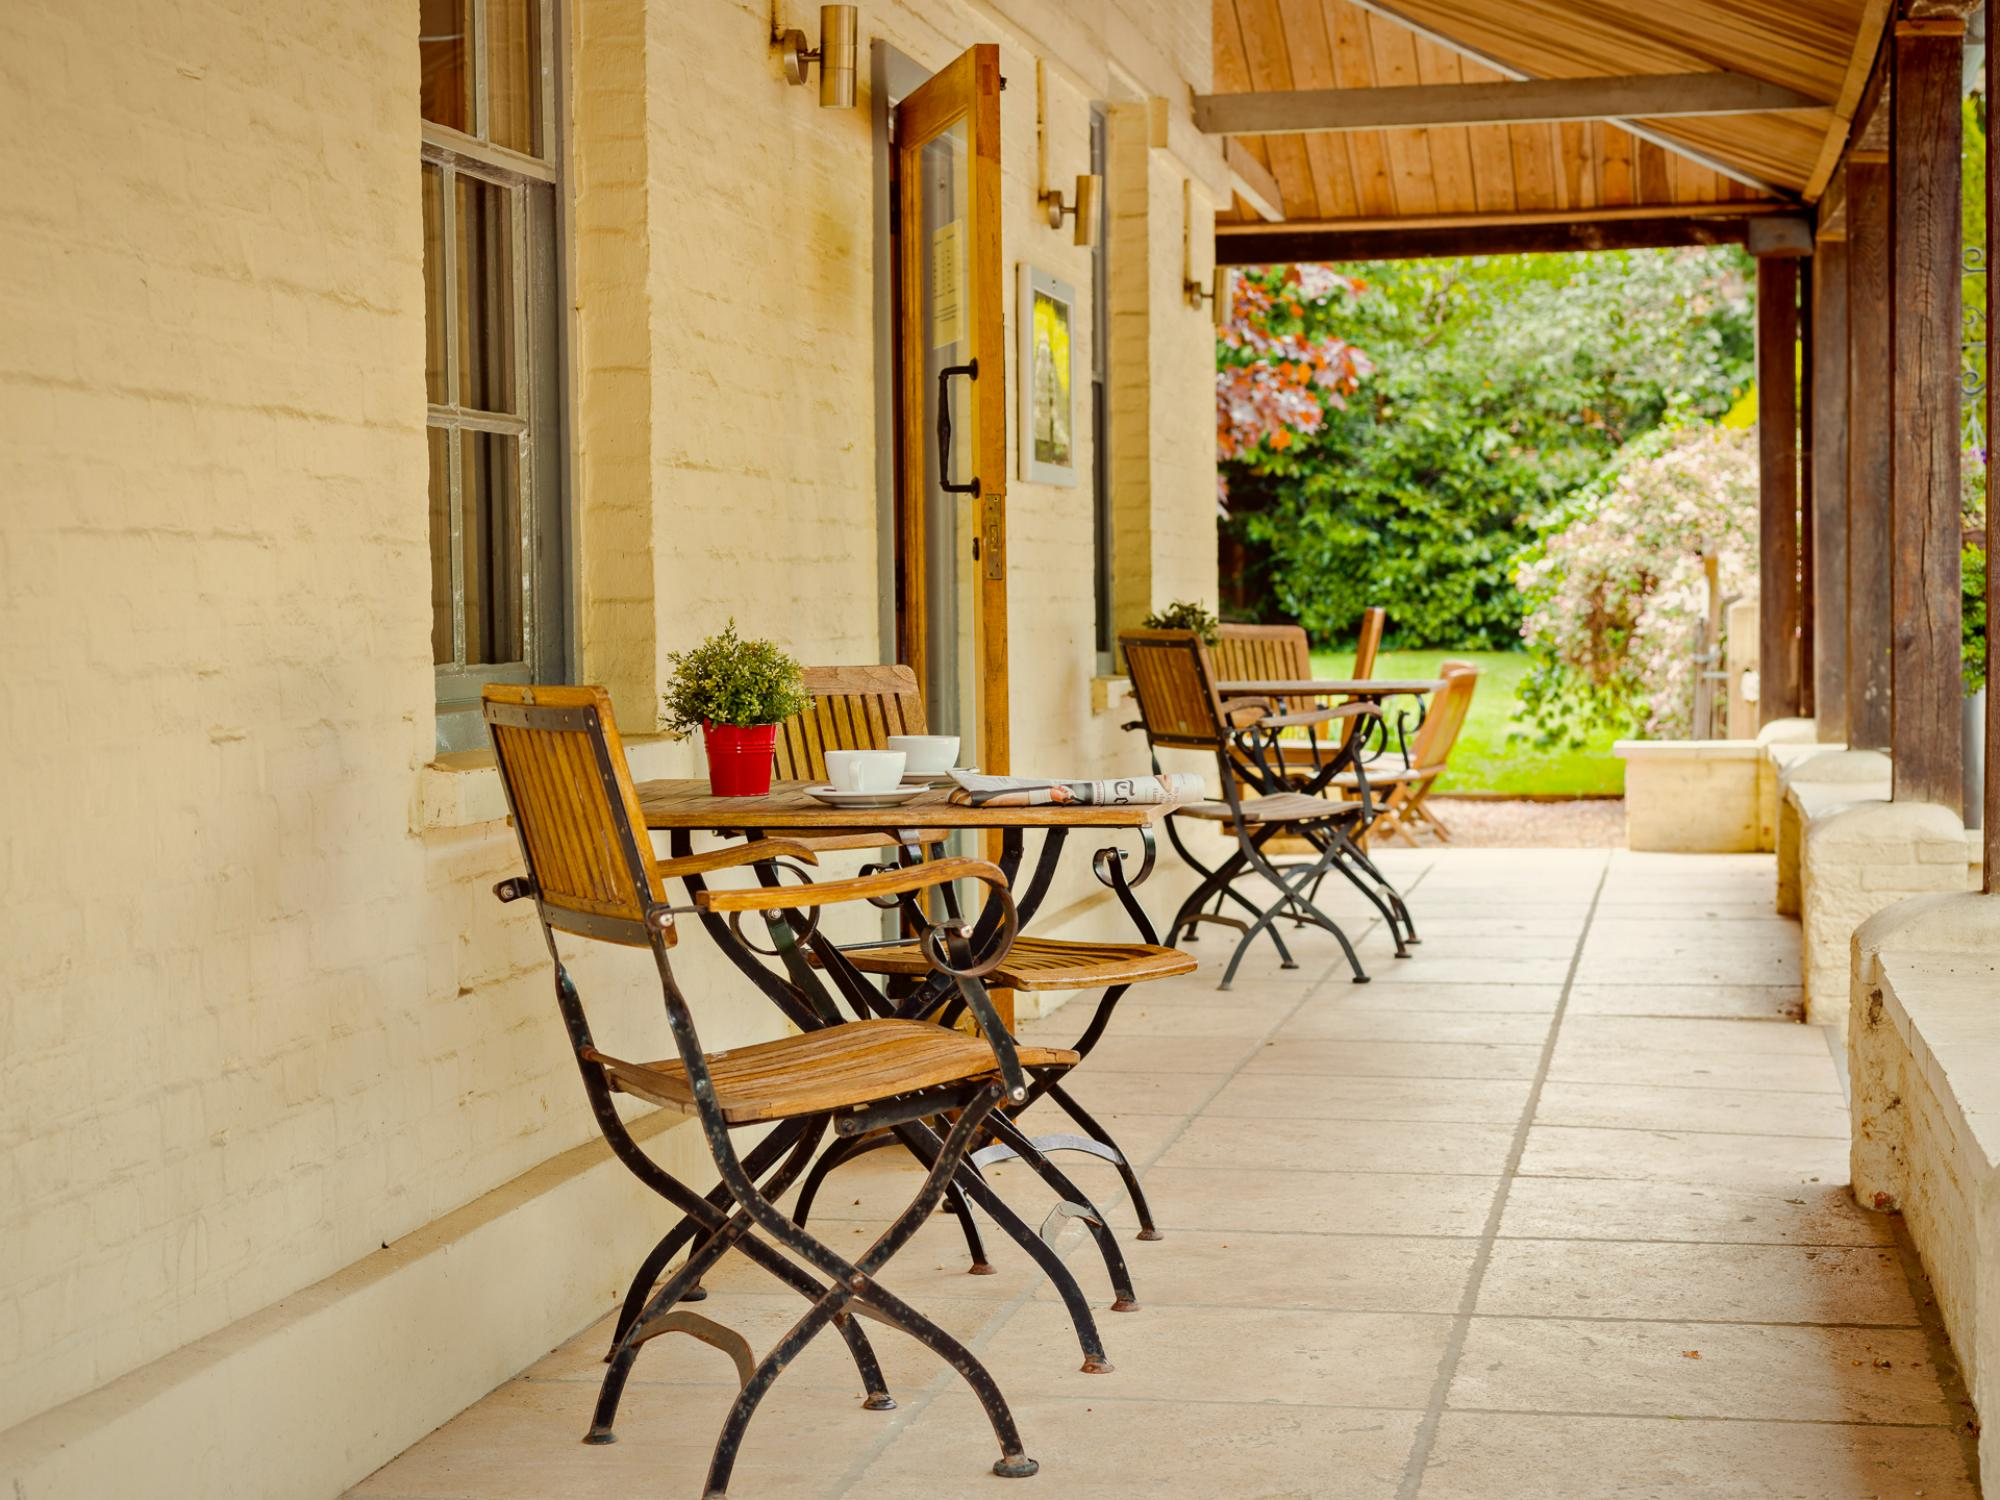 B&Bs in Haslemere holidays at Cool Places